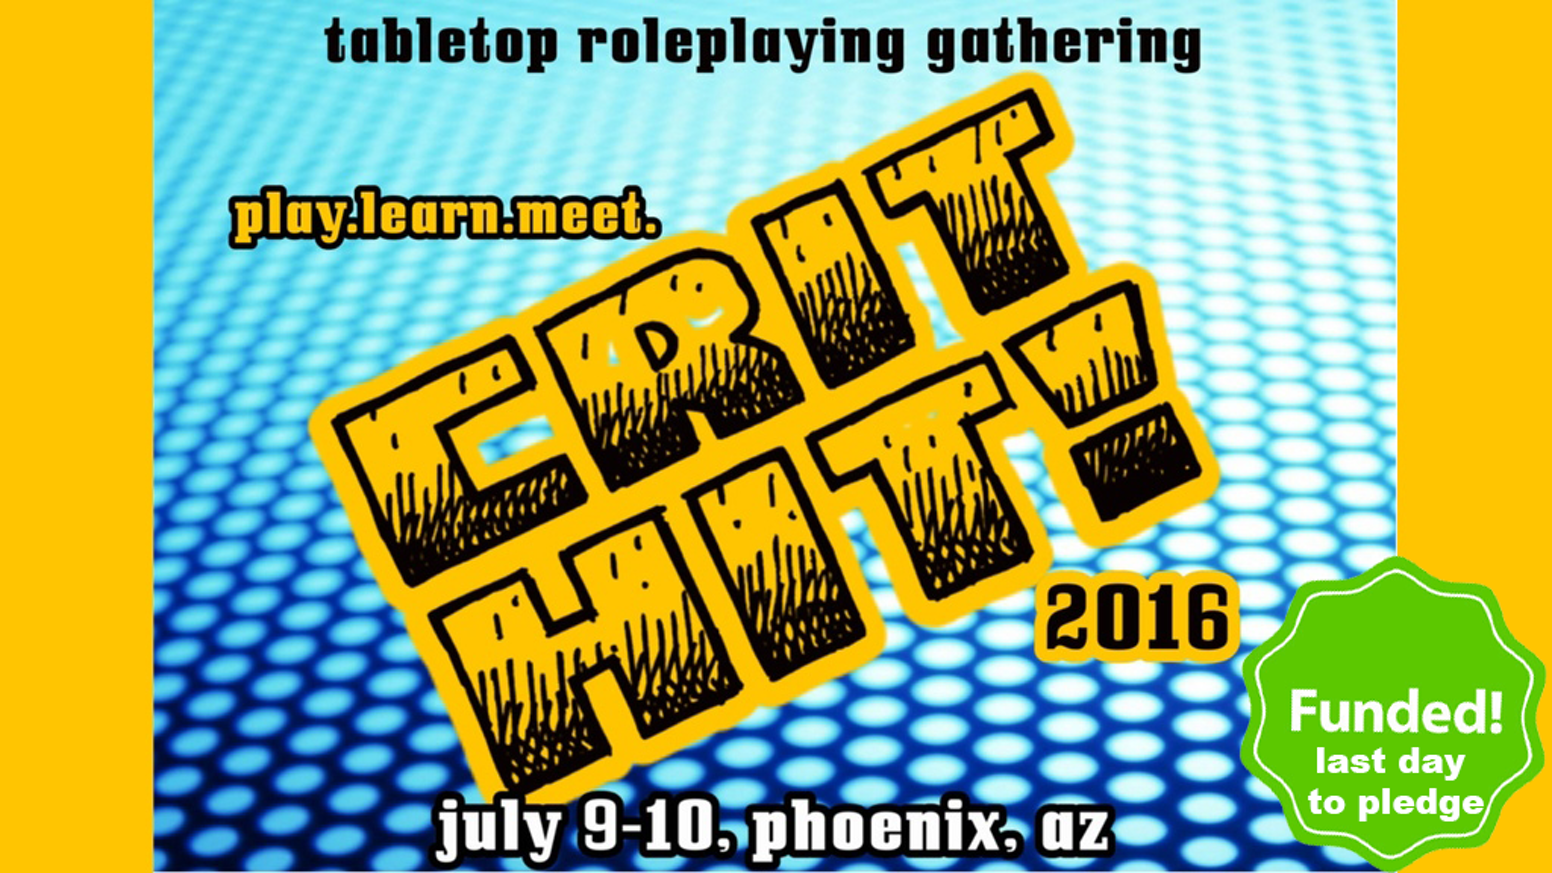 A tabletop RPG focused event where you can play games, learn about new systems and meet creators. July 9-10 Phoenix, AZ